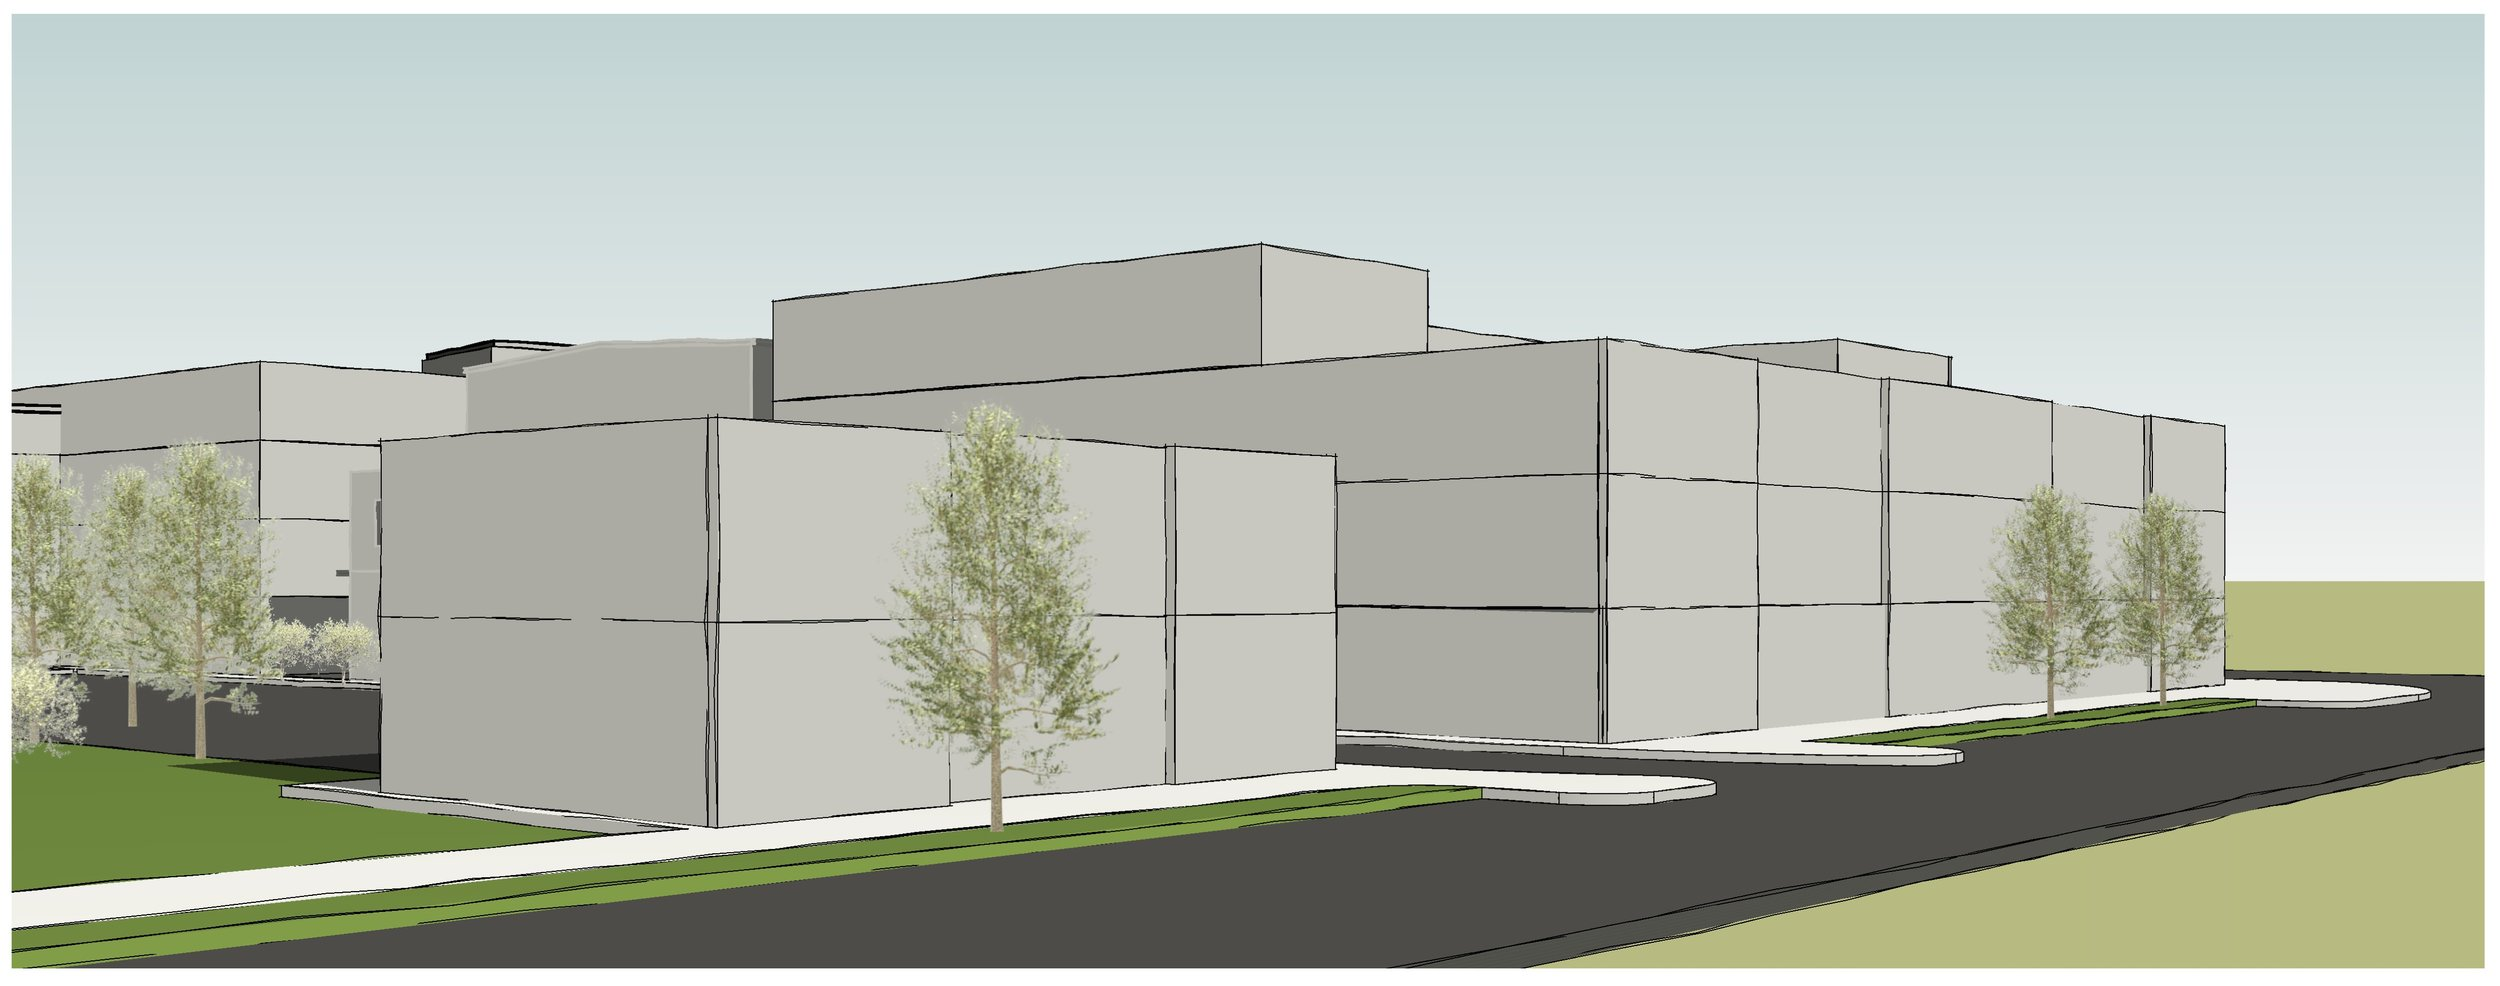 Conceptual massing from Portland Ave looking east toward Moreland Ave.